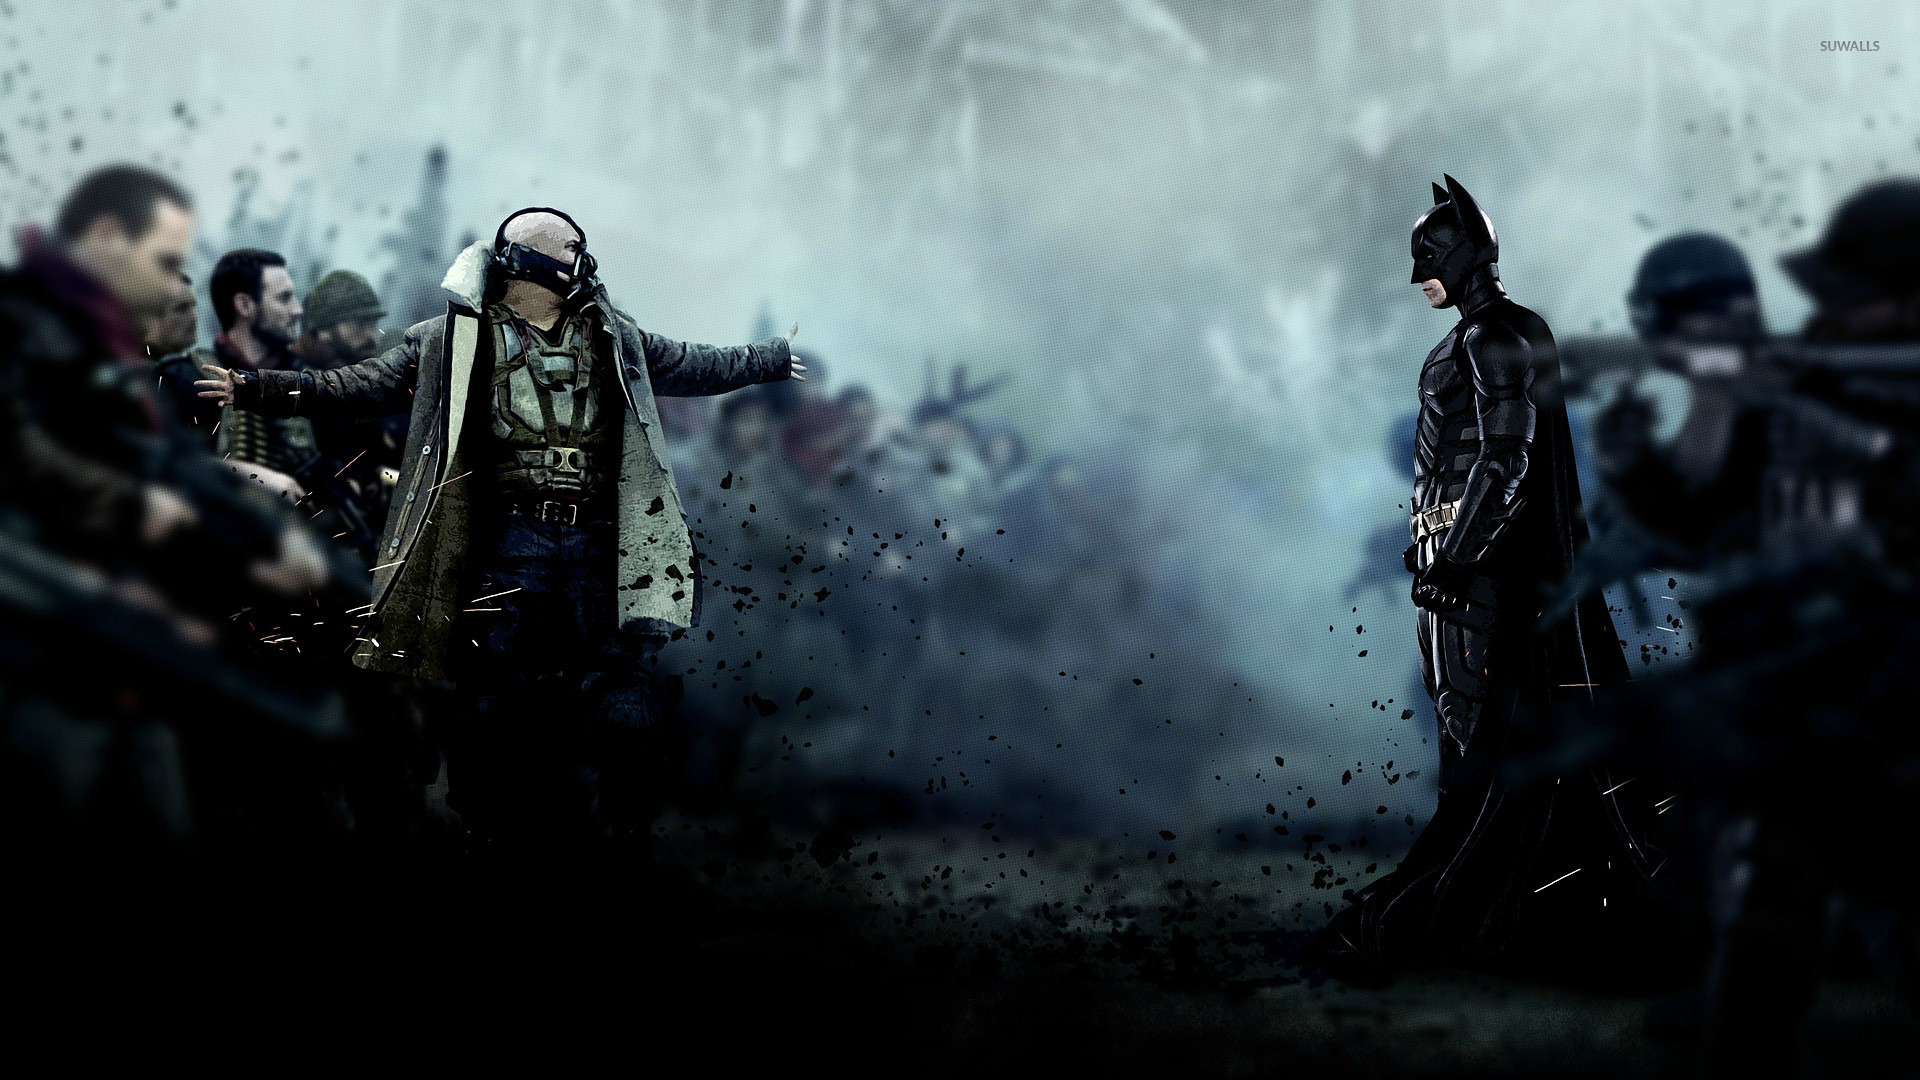 Bane and Batman - The Dark Knight Rises wallpaper - Movie ...